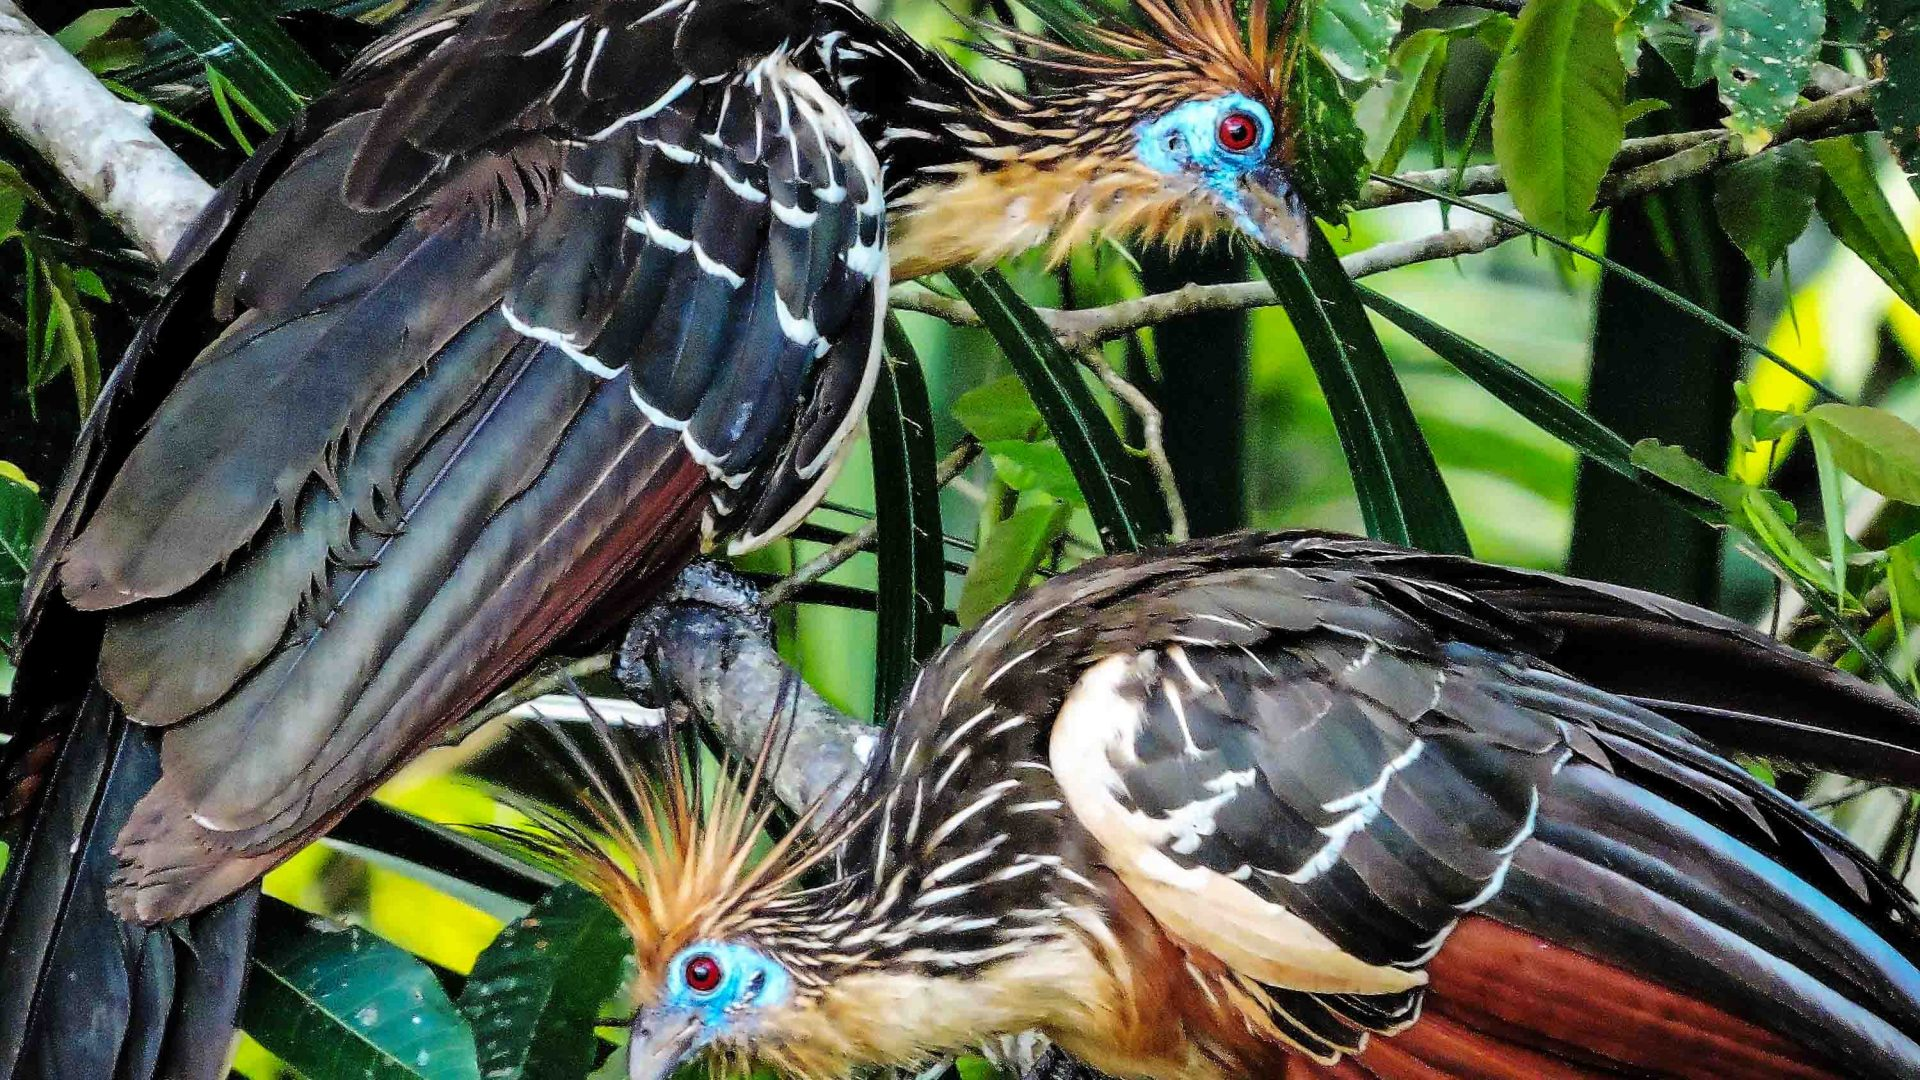 Mohican-crowned hoatzin bird at Chalalan Lodge, Madidi National Park.